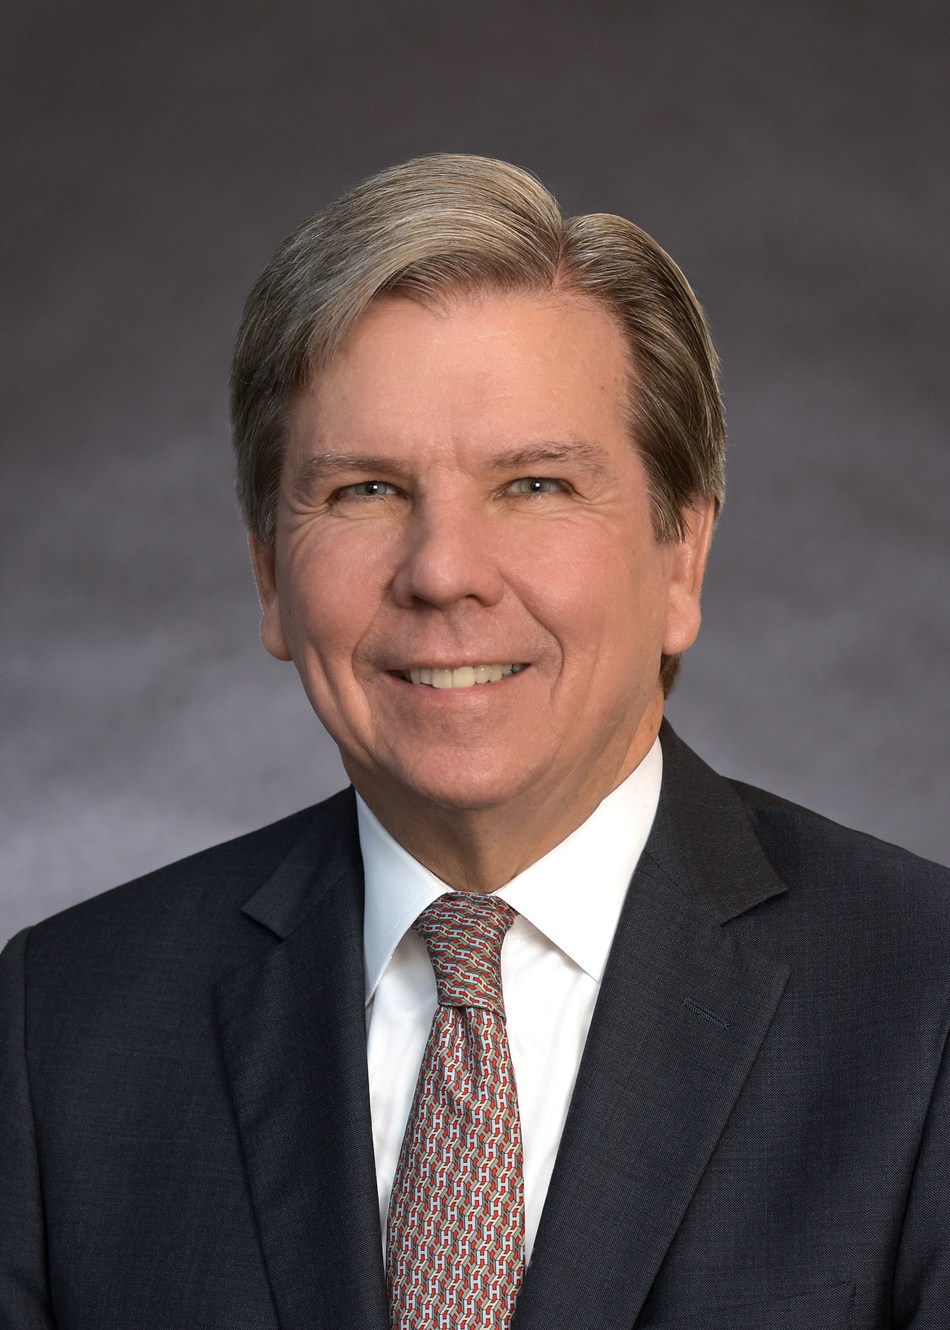 Stan Shipley, CFA, President and CEO of STMM Family Office, LLC.